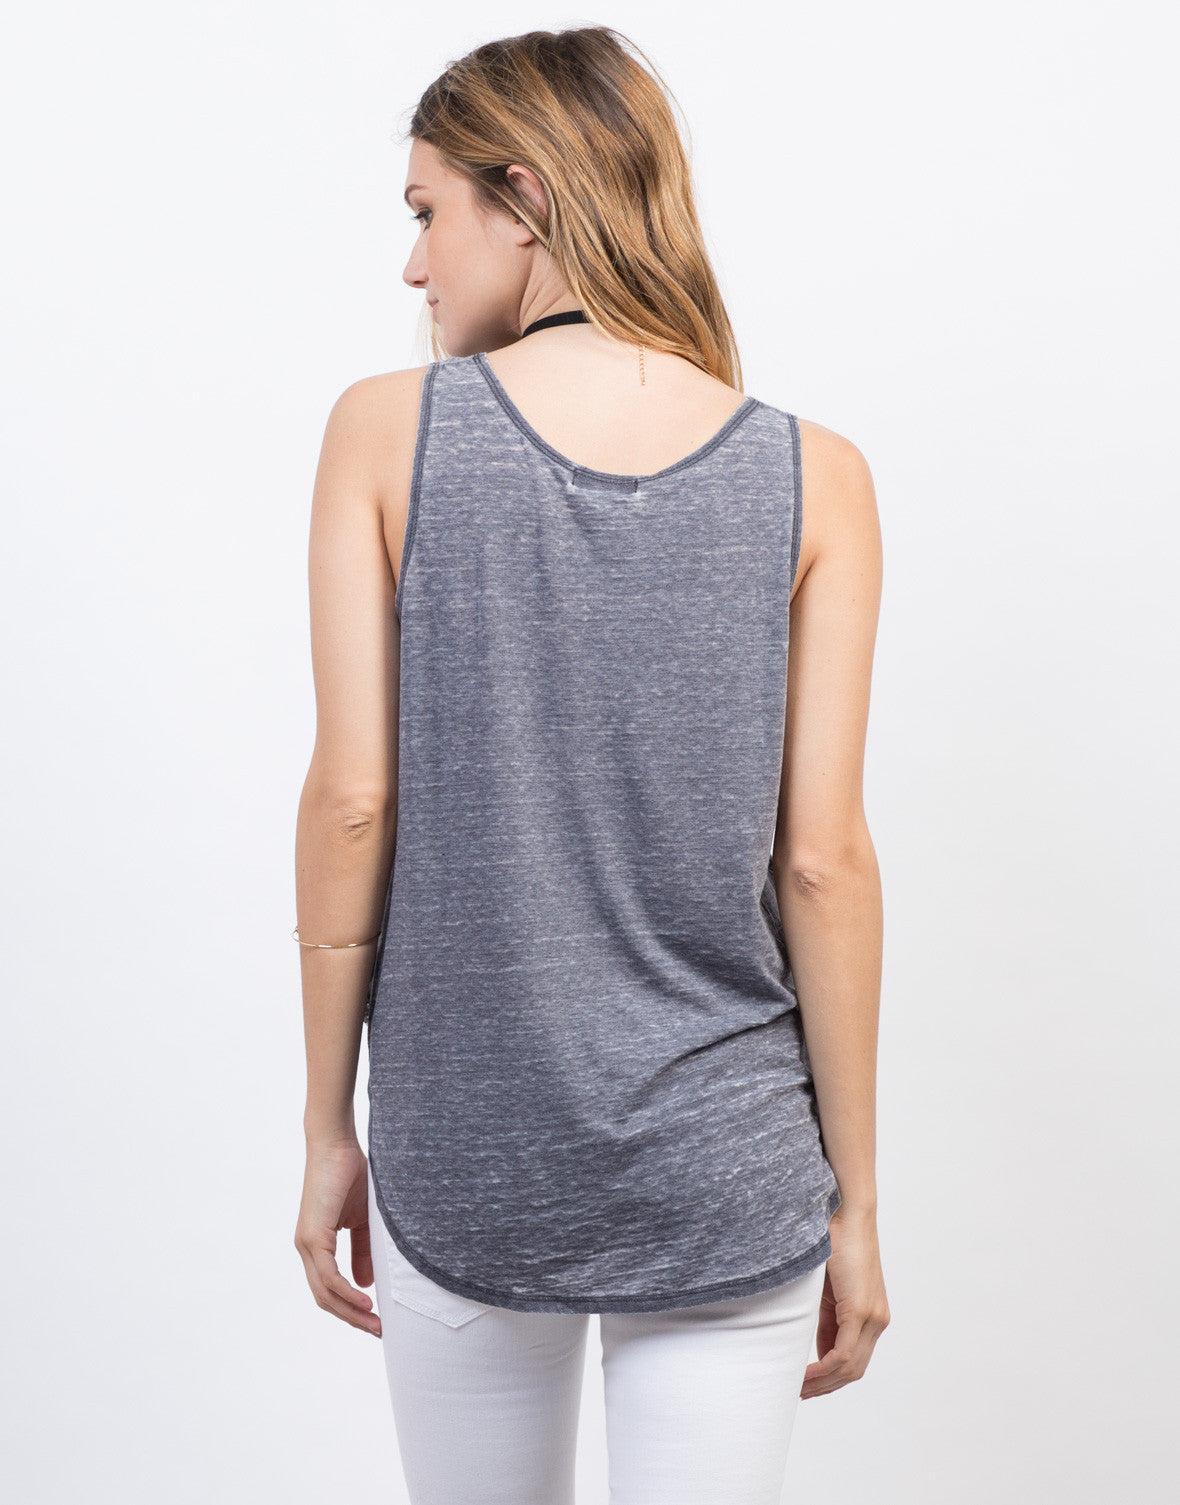 Back View of Ripped Sides Tank Top